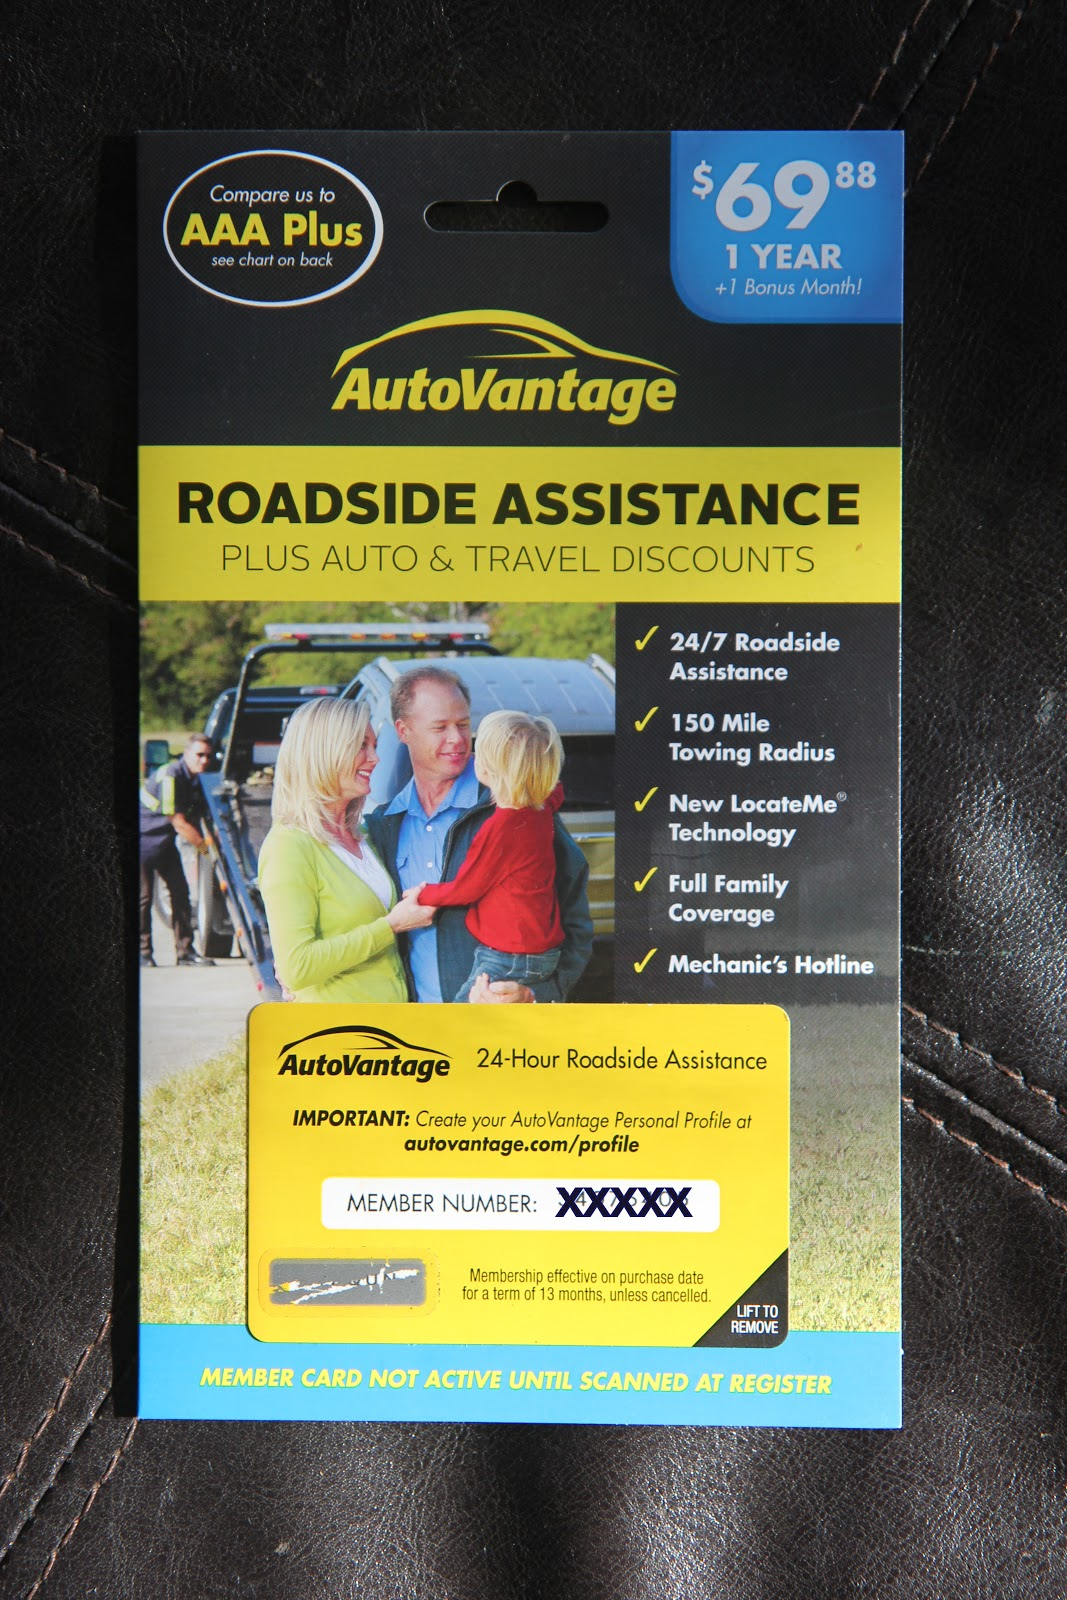 Lille Punkin39;: Stranded? Get Help You Can Afford with AutoVantage!